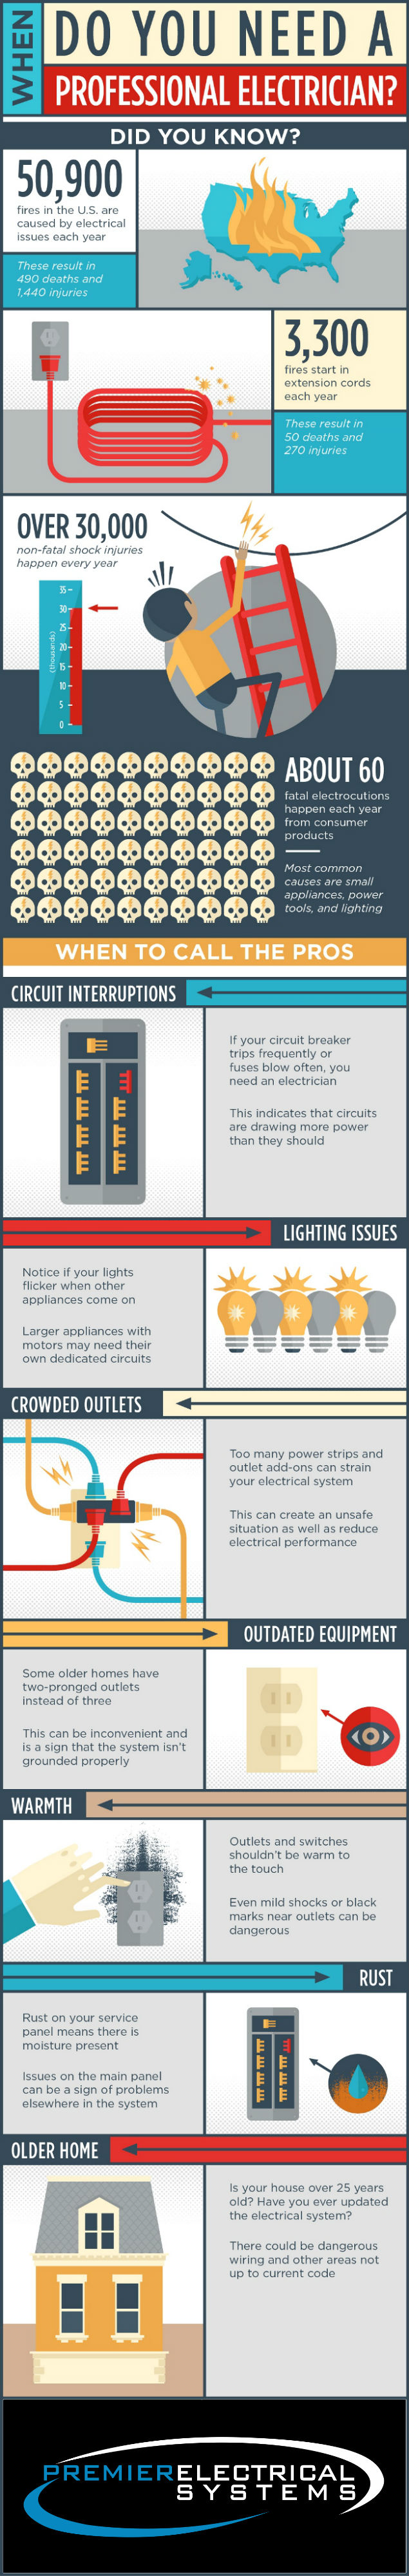 when-do-you-need-a-professional-electrician-infographic